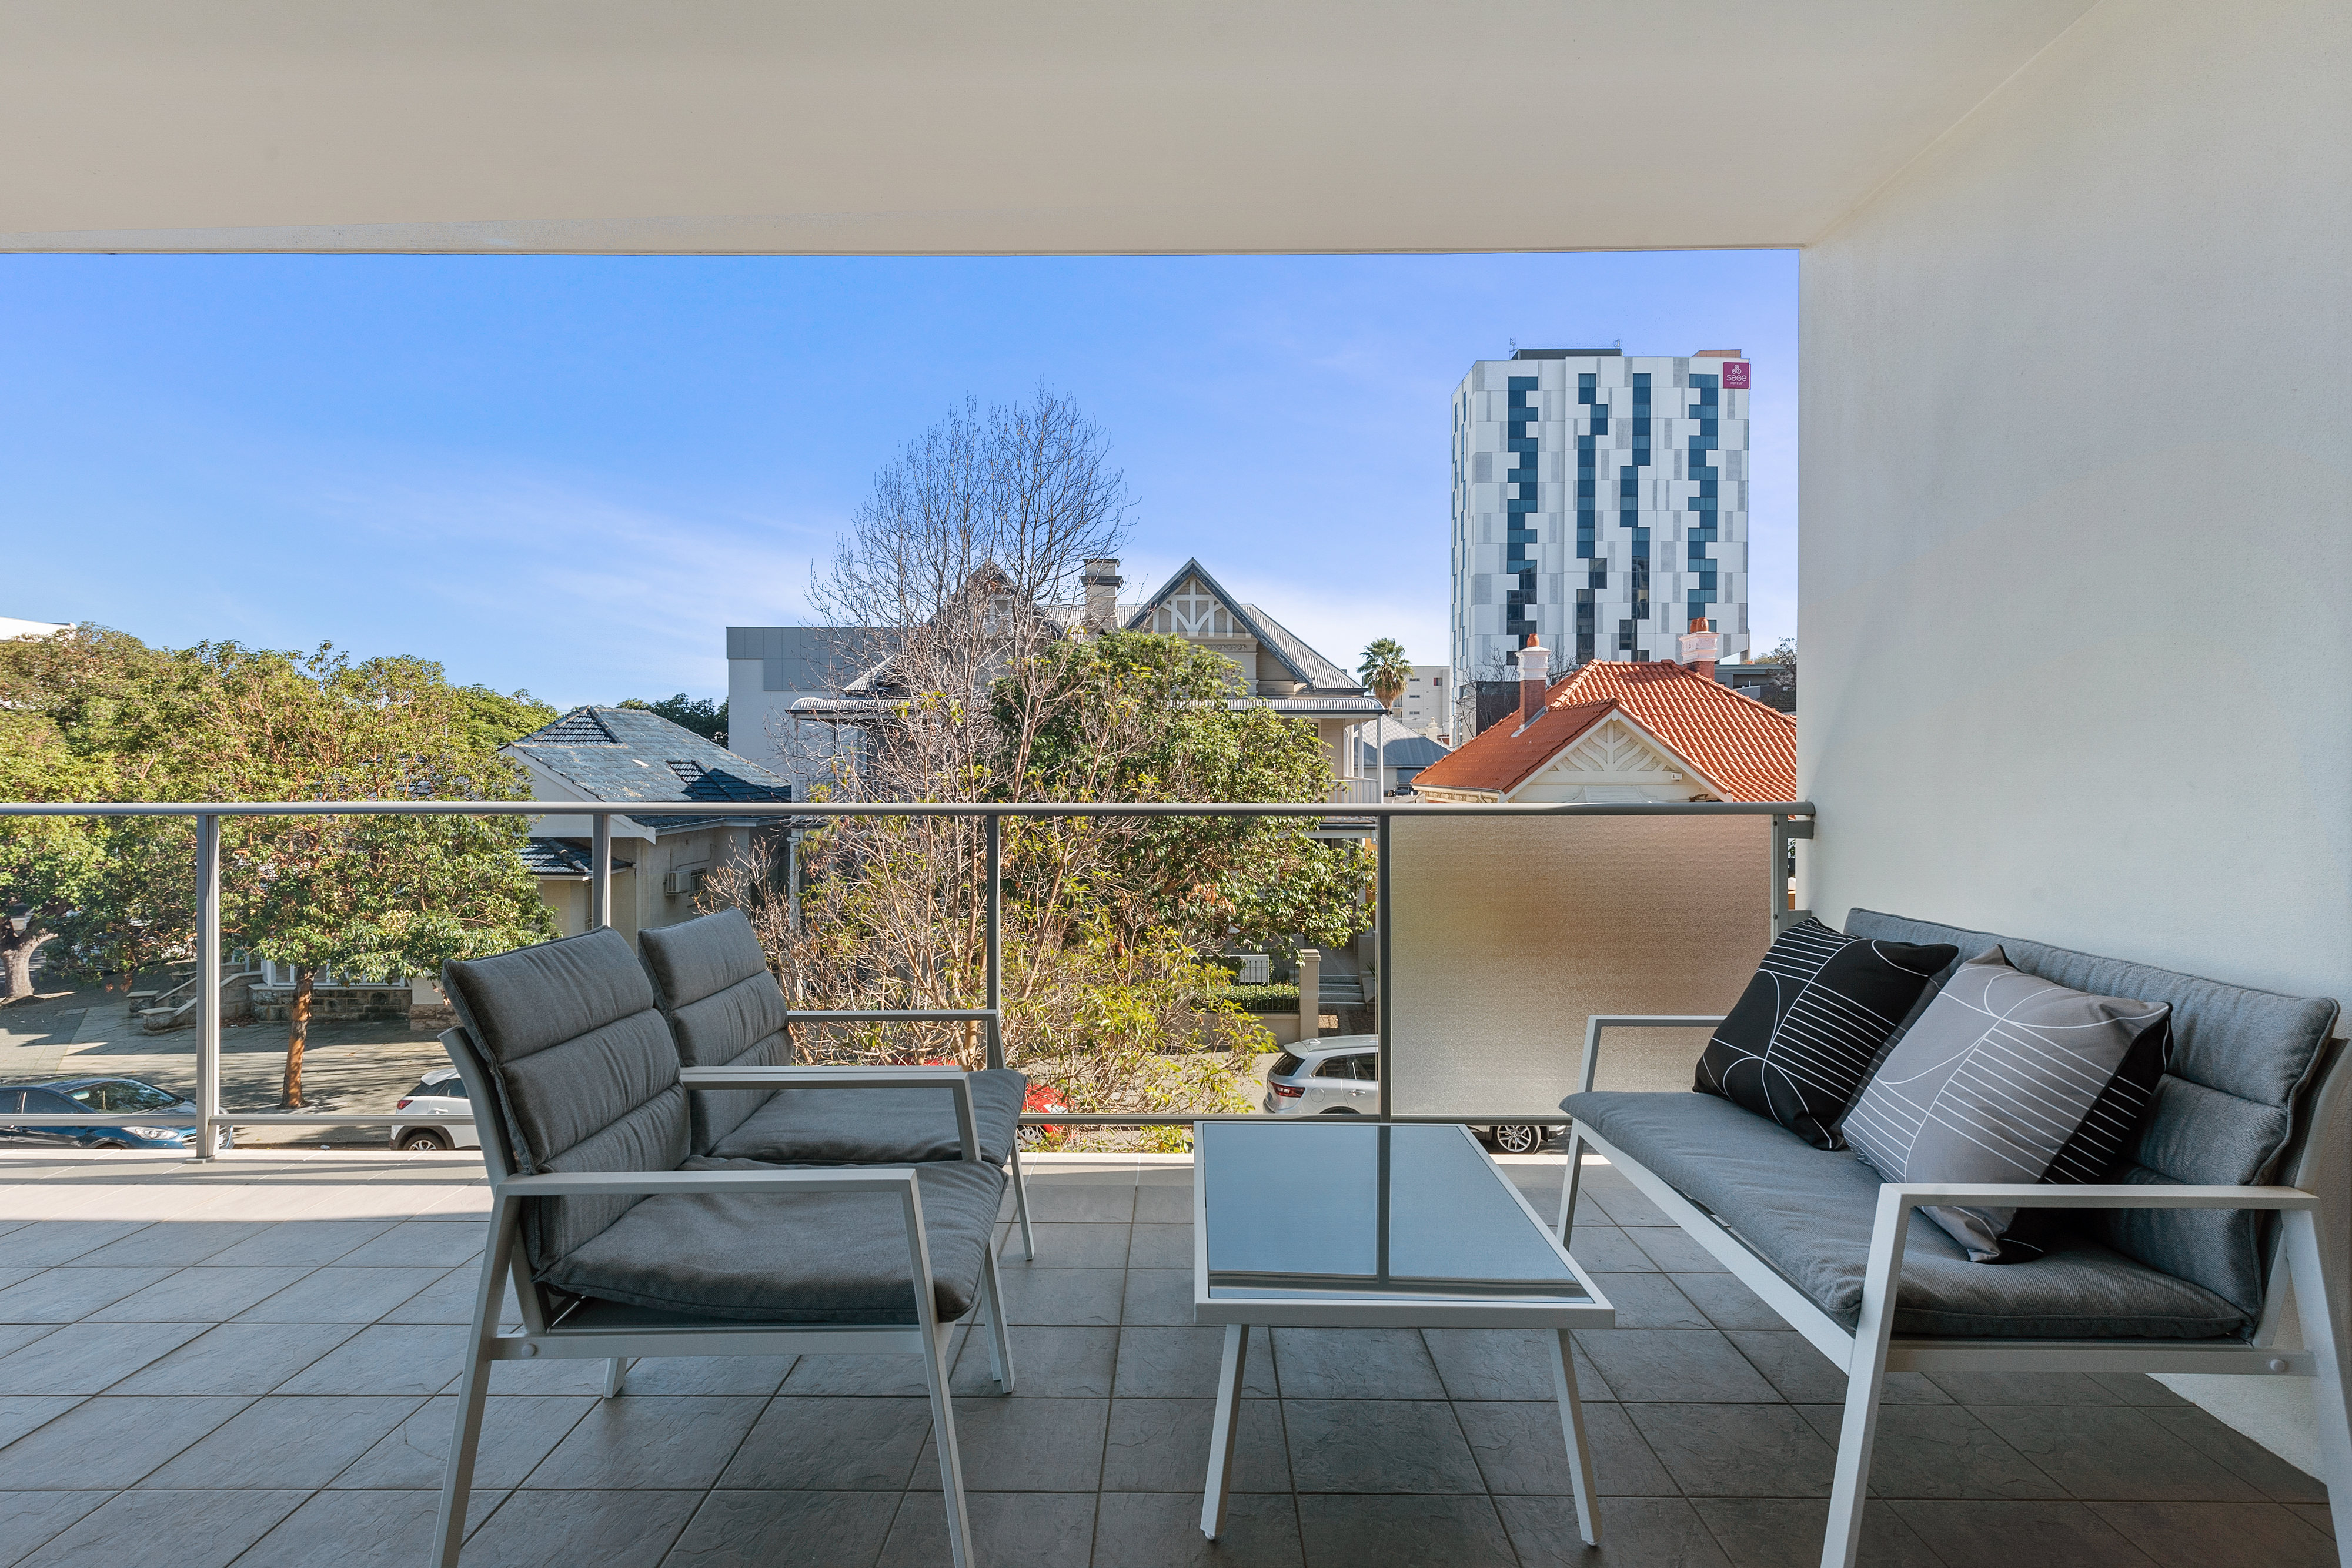 PRINT 202 48 Outram St, West Perth 23